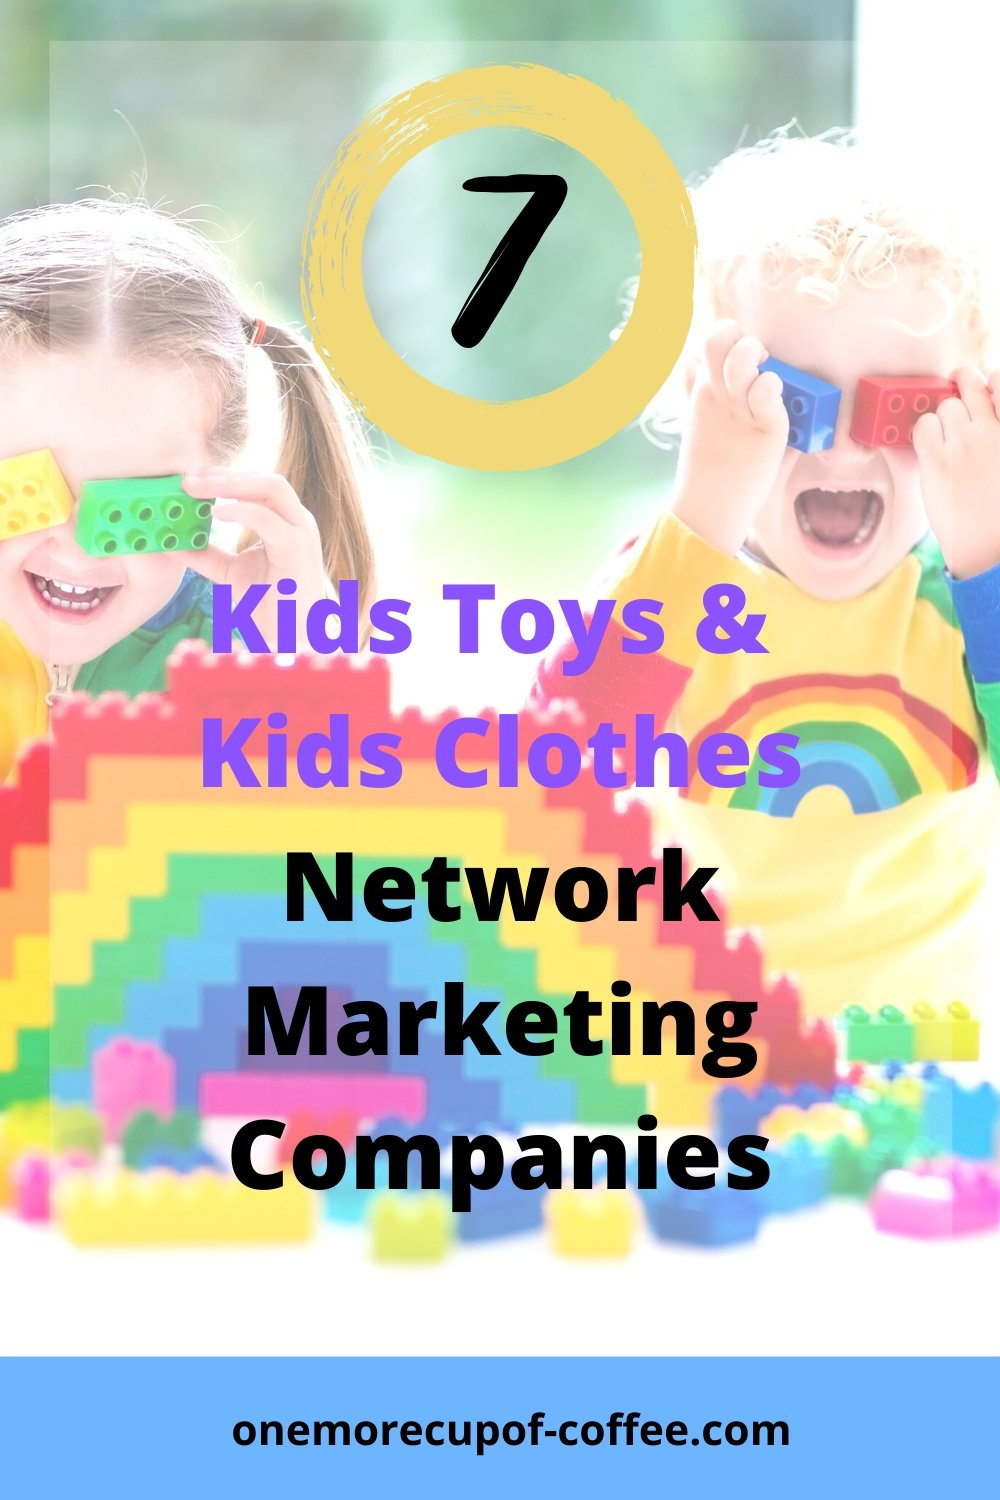 Kids playing with toys to represent Network Marketing Companies